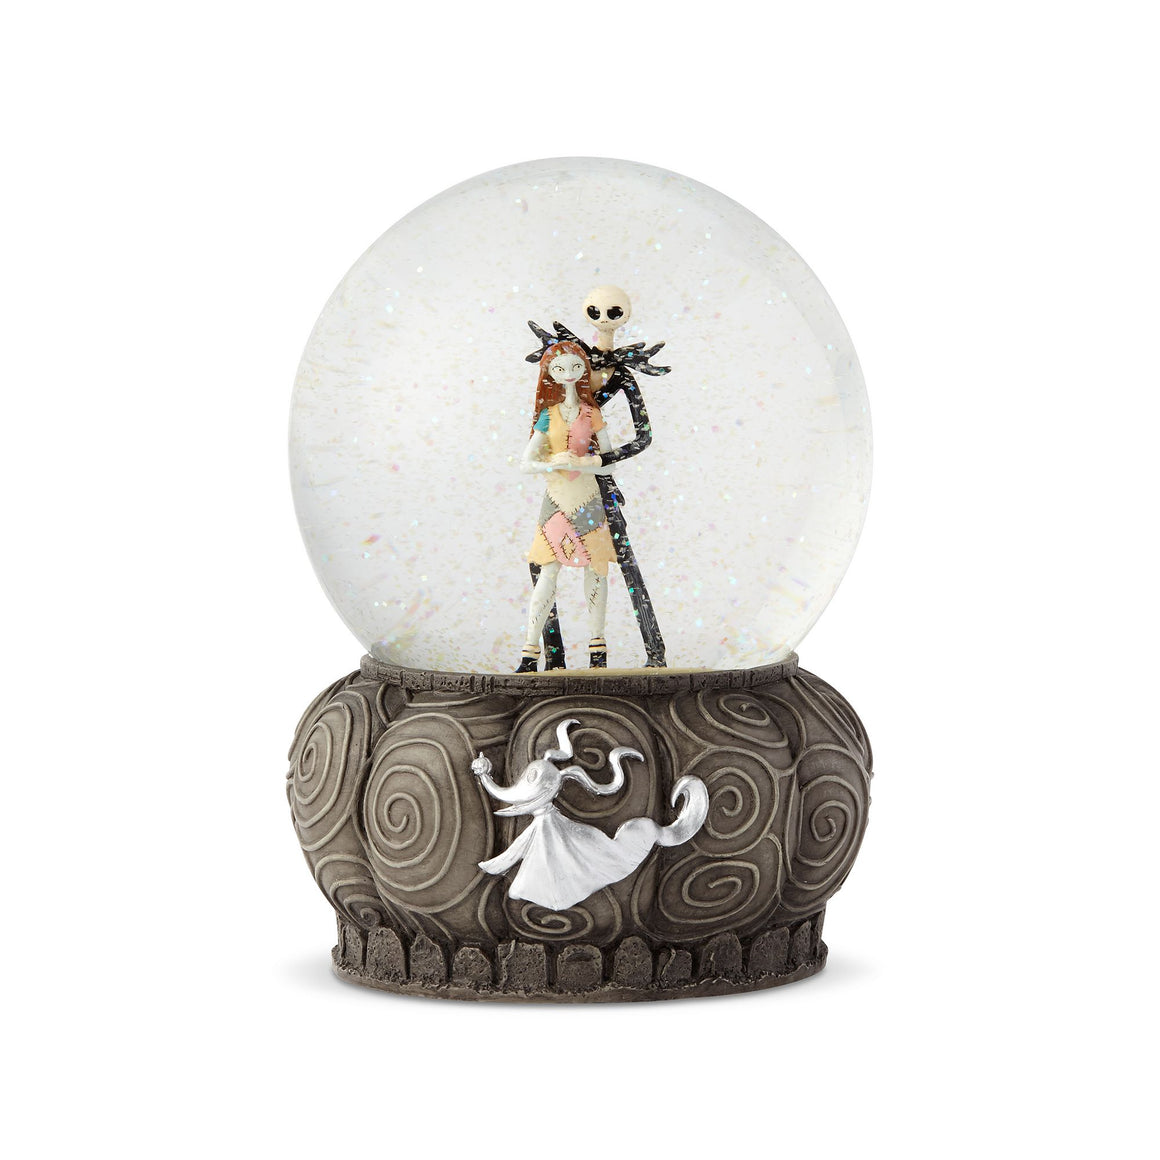 The Nightmare Before Christmas Waterball by Disney Showcase